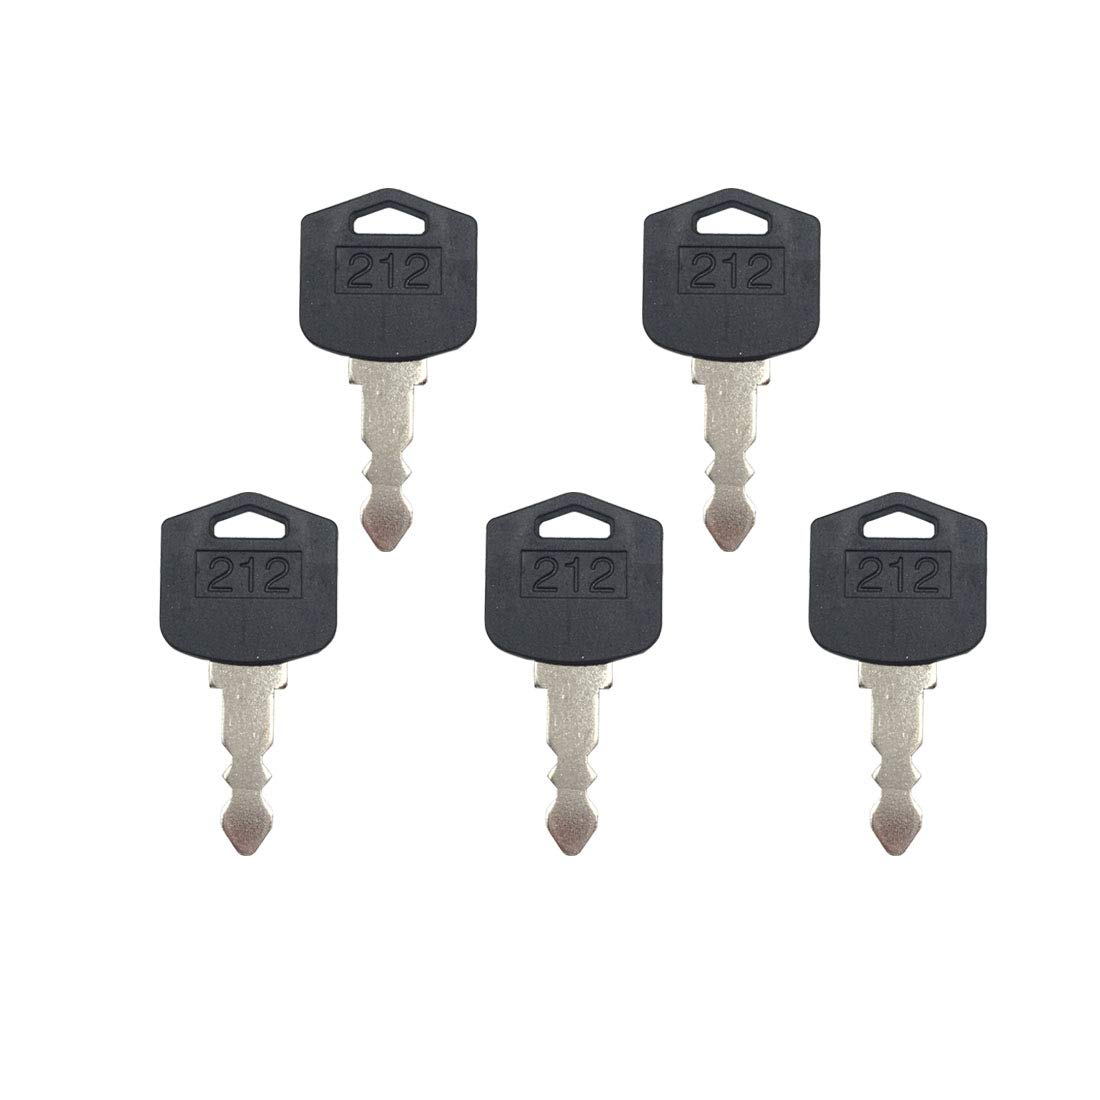 5 Pcs D554212 Ignition Key for Doosan Daewoo Forklift Models